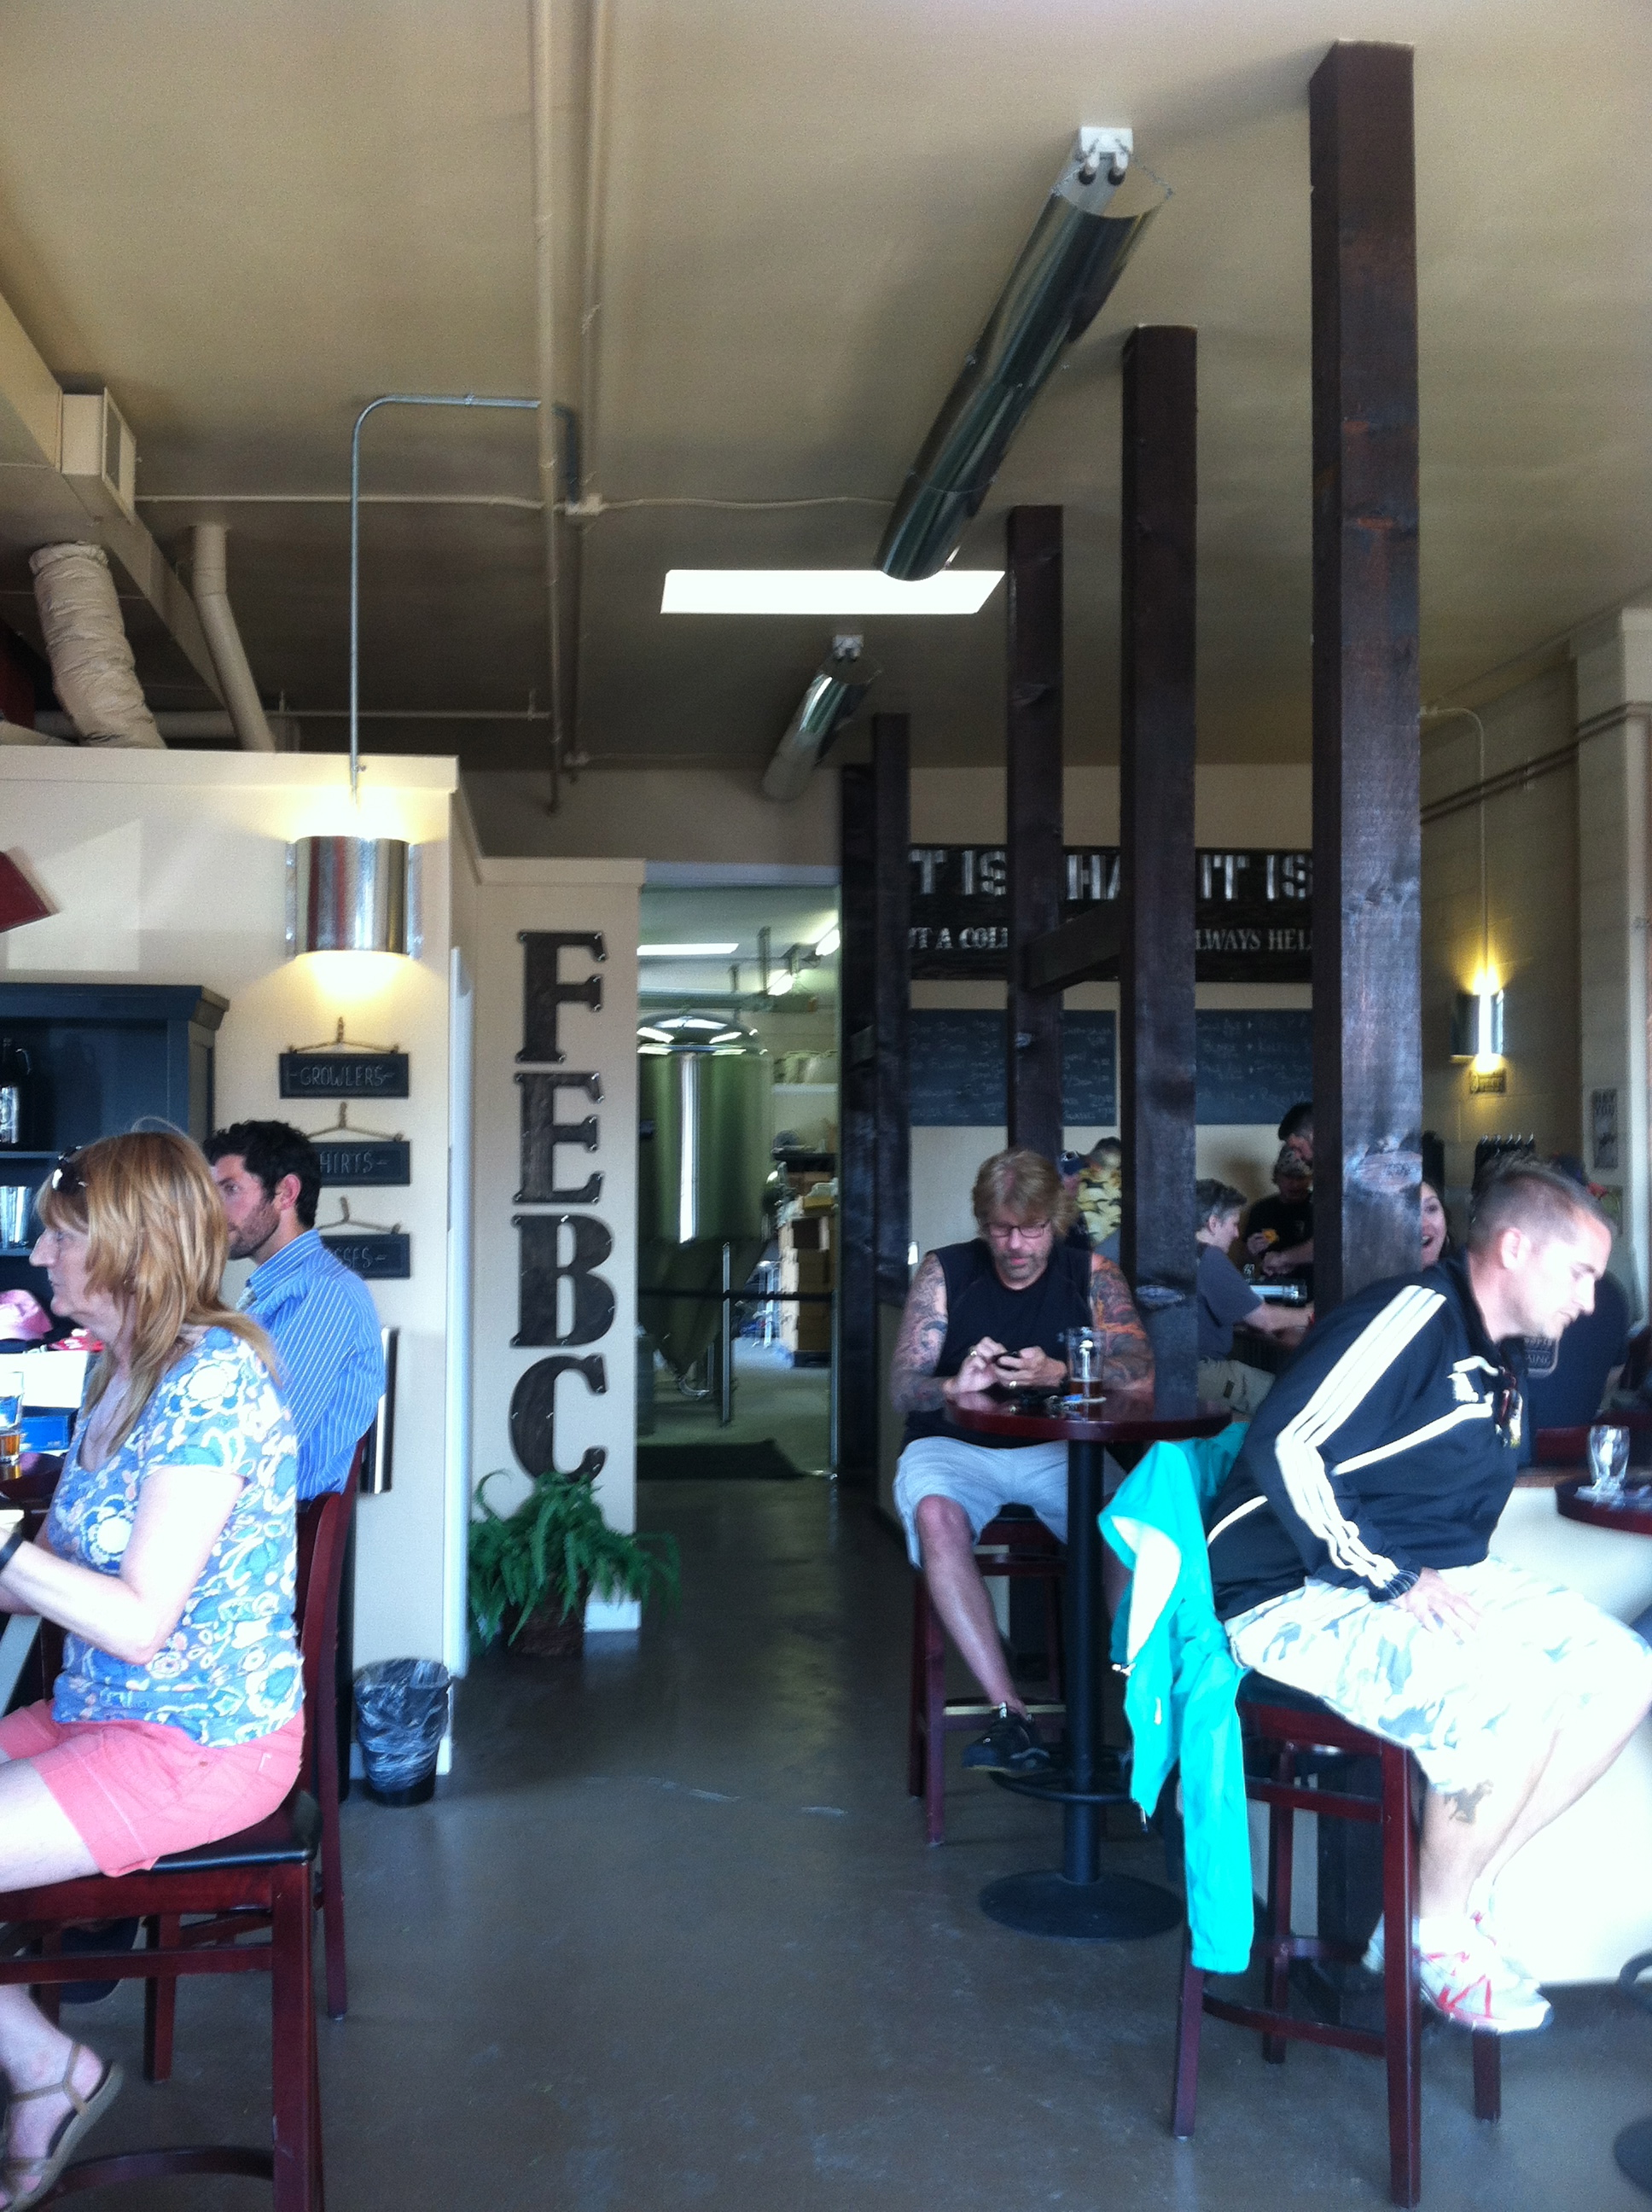 Try the 1890 IPA at Freedom's Edge Brewing Co.